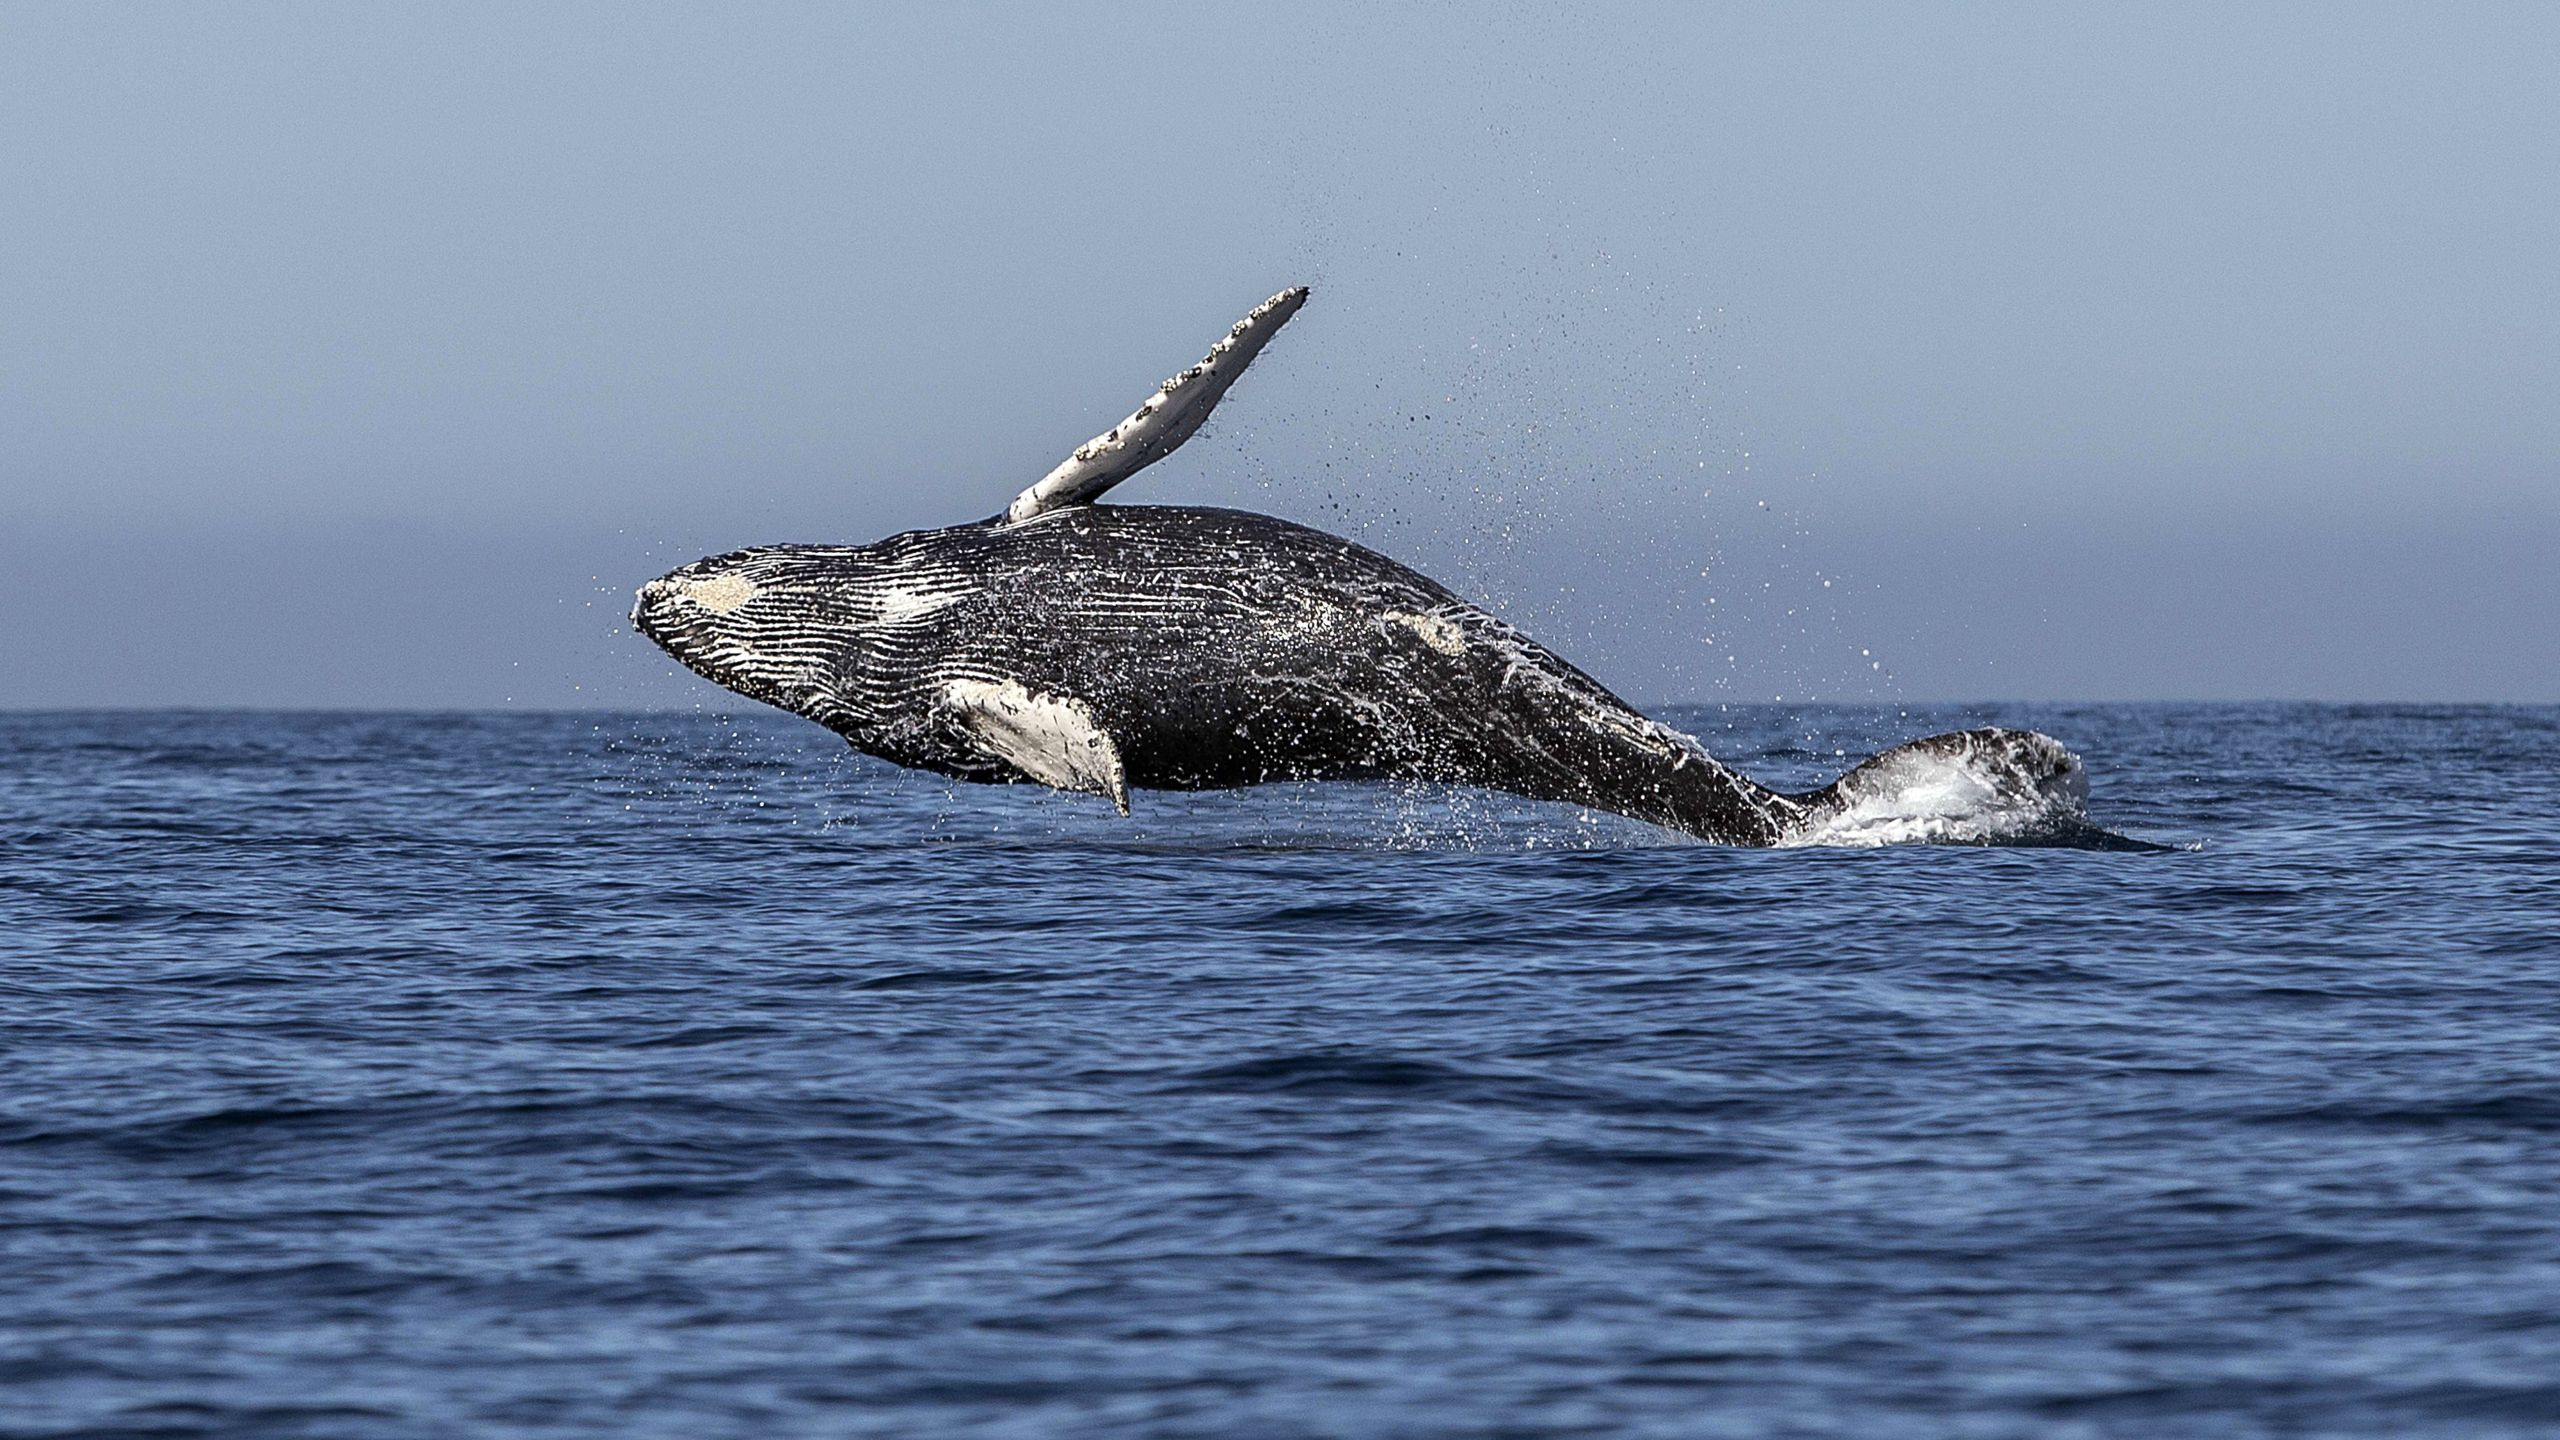 A humpback whale jumps out of the Pacific Ocean's waters in Los Cabos, Baja California Sur, Mexico on March 14, 2018. (FERNANDO CASTILLO/AFP via Getty Images)